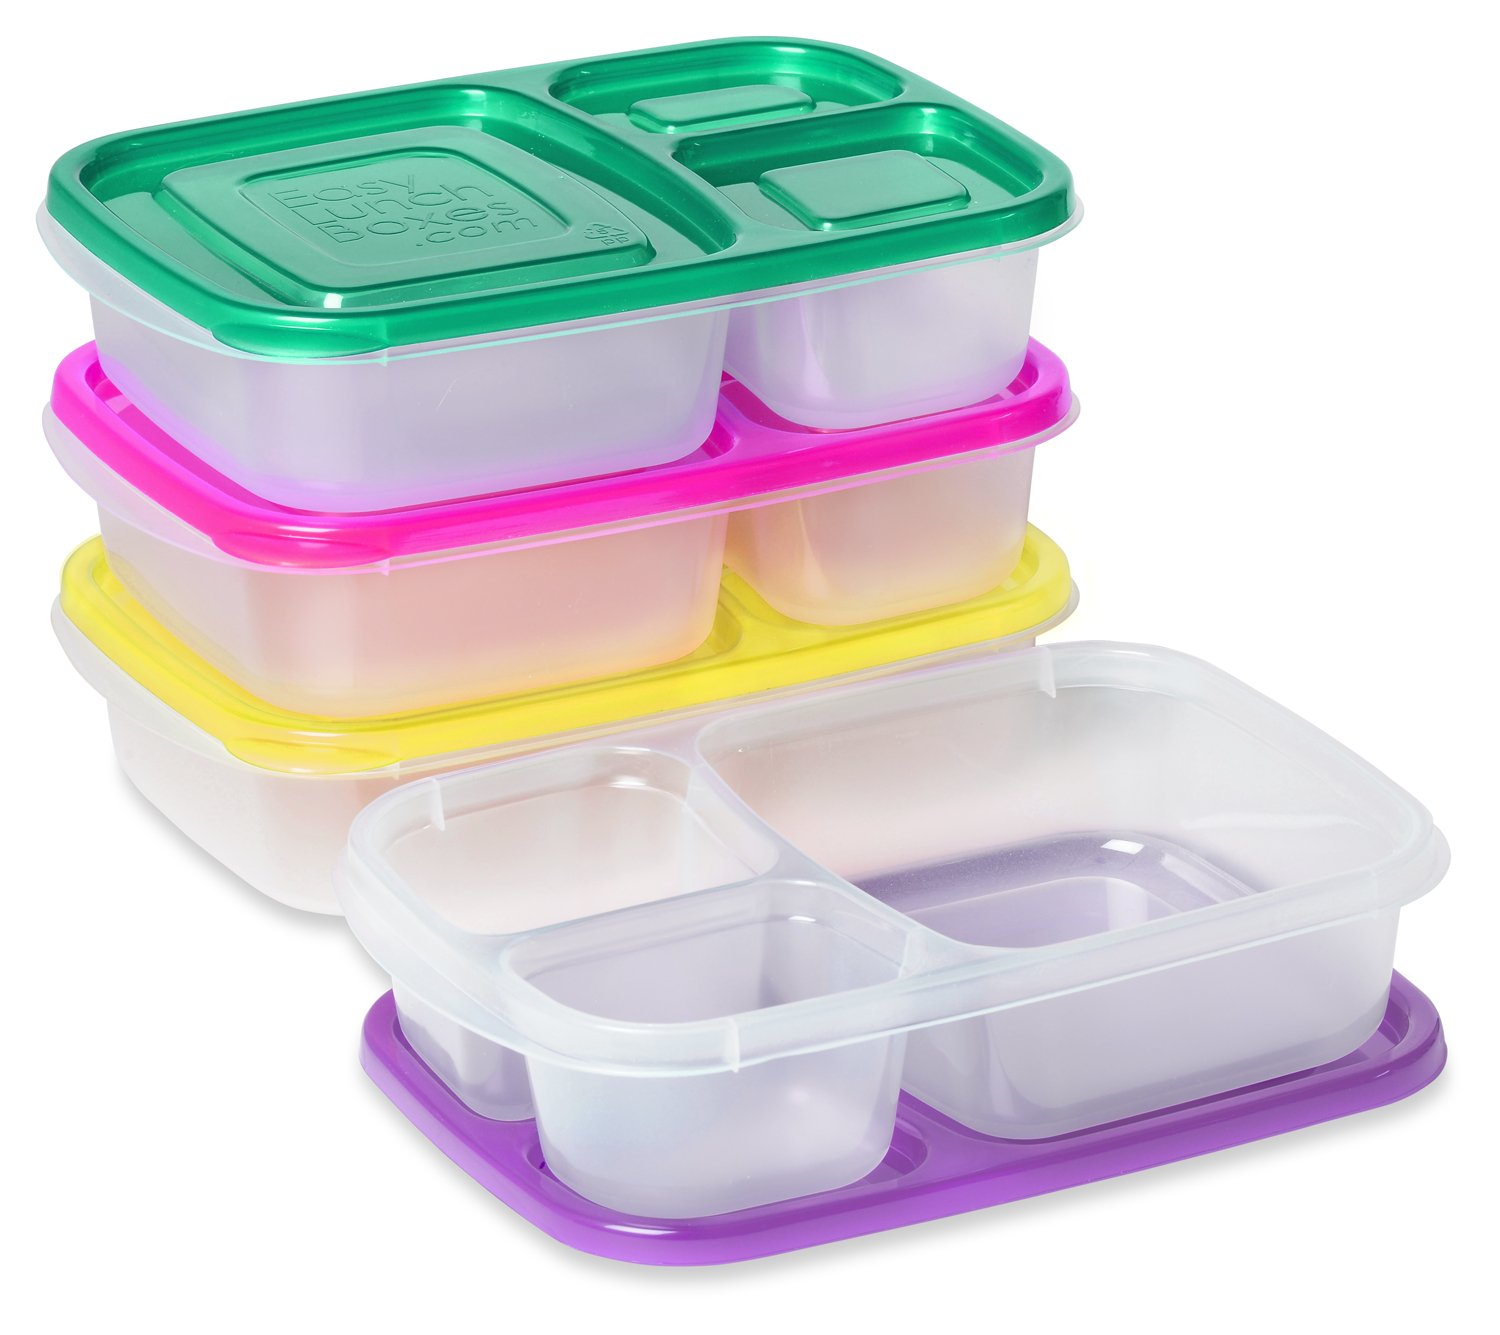 easylunchboxes 3 compartment bento lunch box containers set of 4 brights new ebay. Black Bedroom Furniture Sets. Home Design Ideas